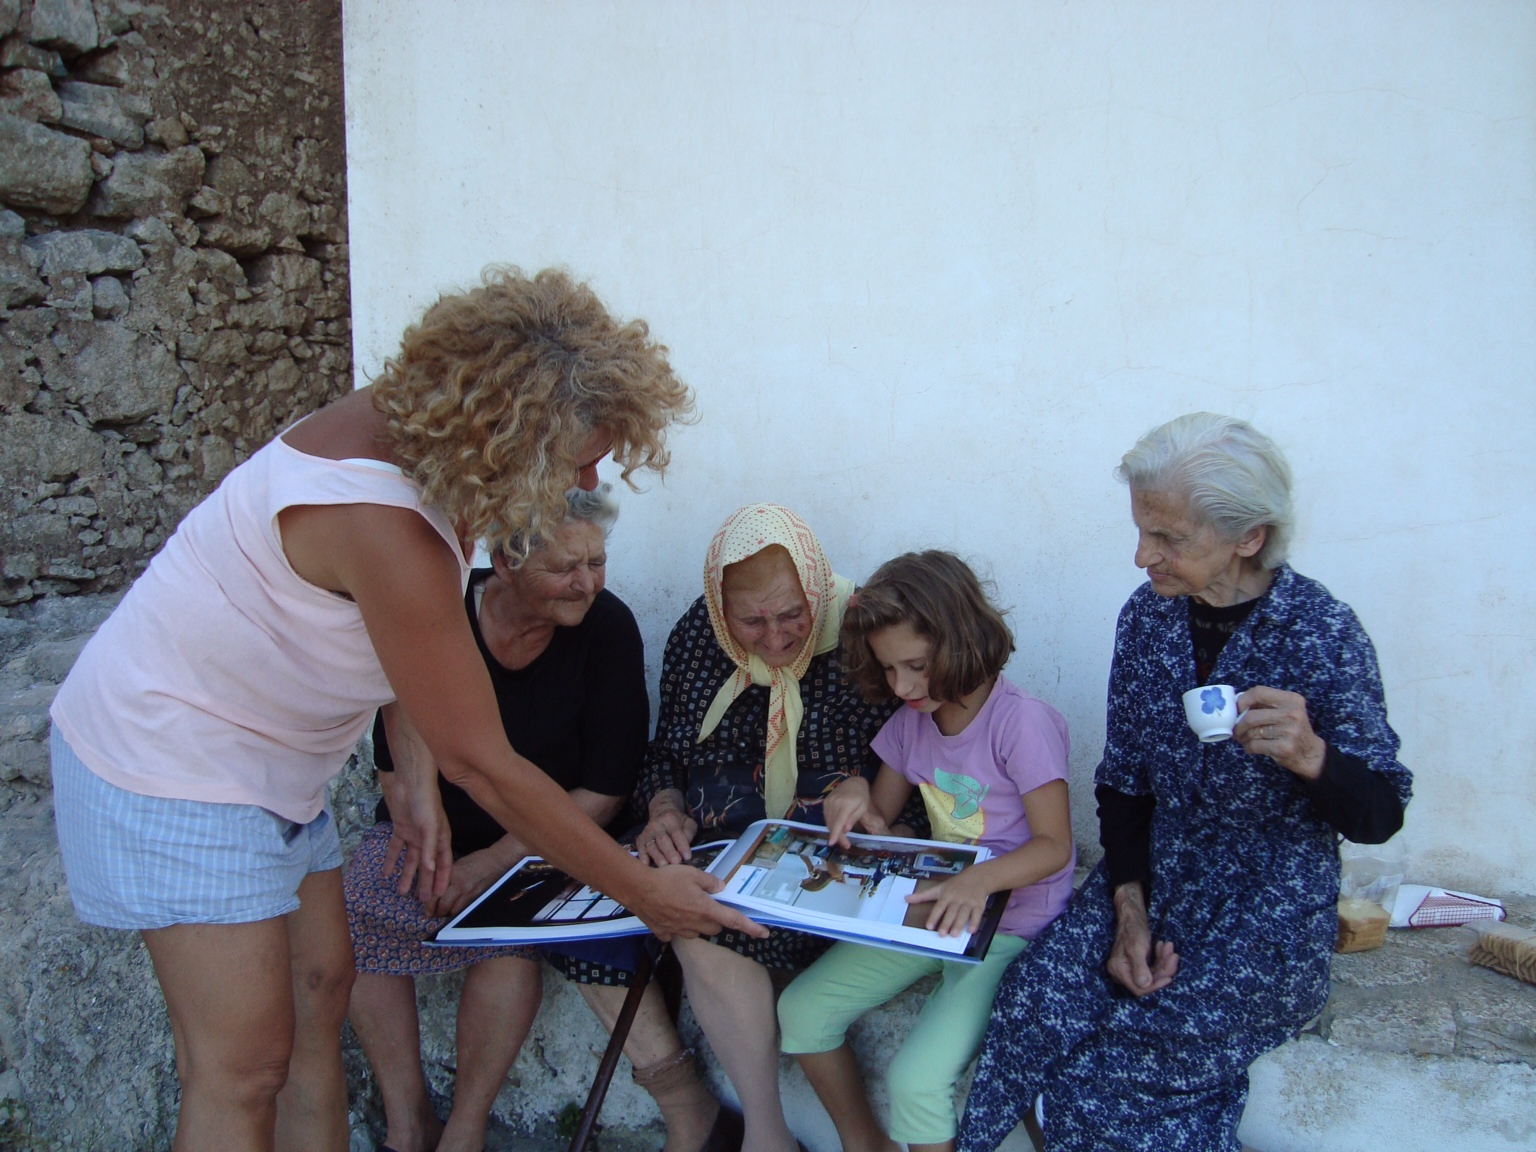 Theochari with some other women from the village paging through the book.